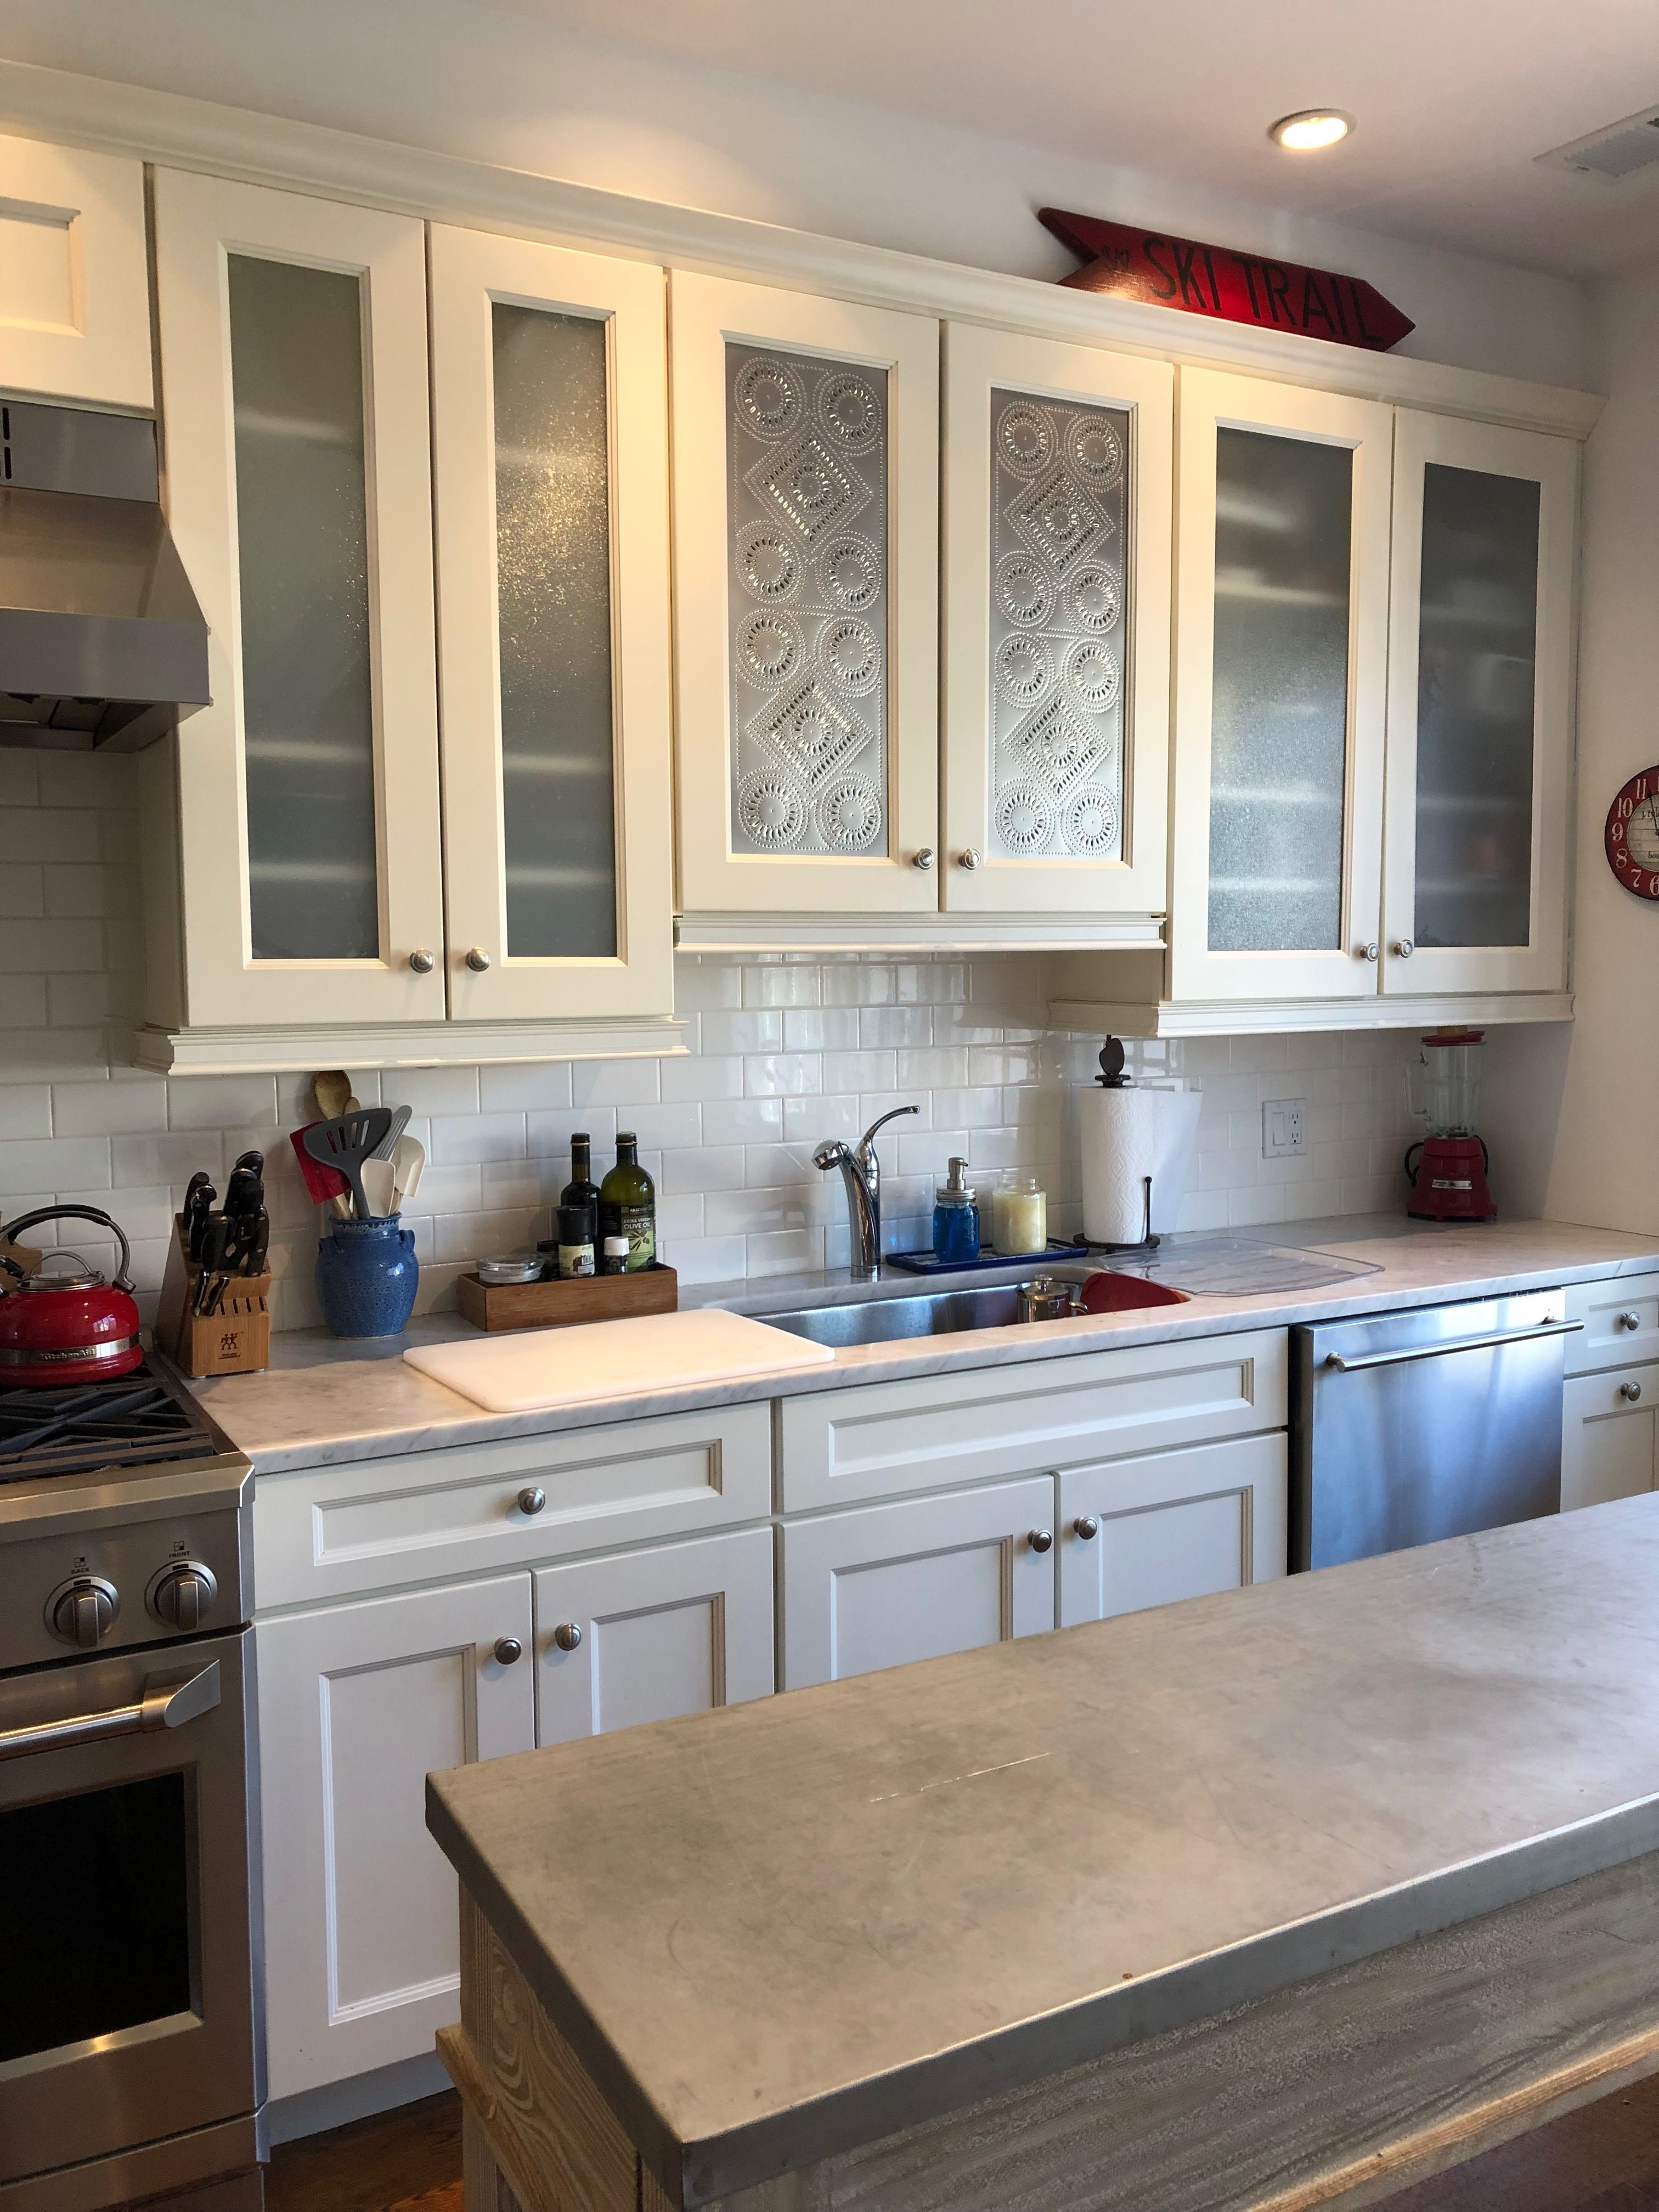 Using Pierced Tin Panels To Add A Bit Of Farmhouse Style To An Otherwise Bland Builder S Kitchen Kitchen Cabinets Tin Panel Kitchen